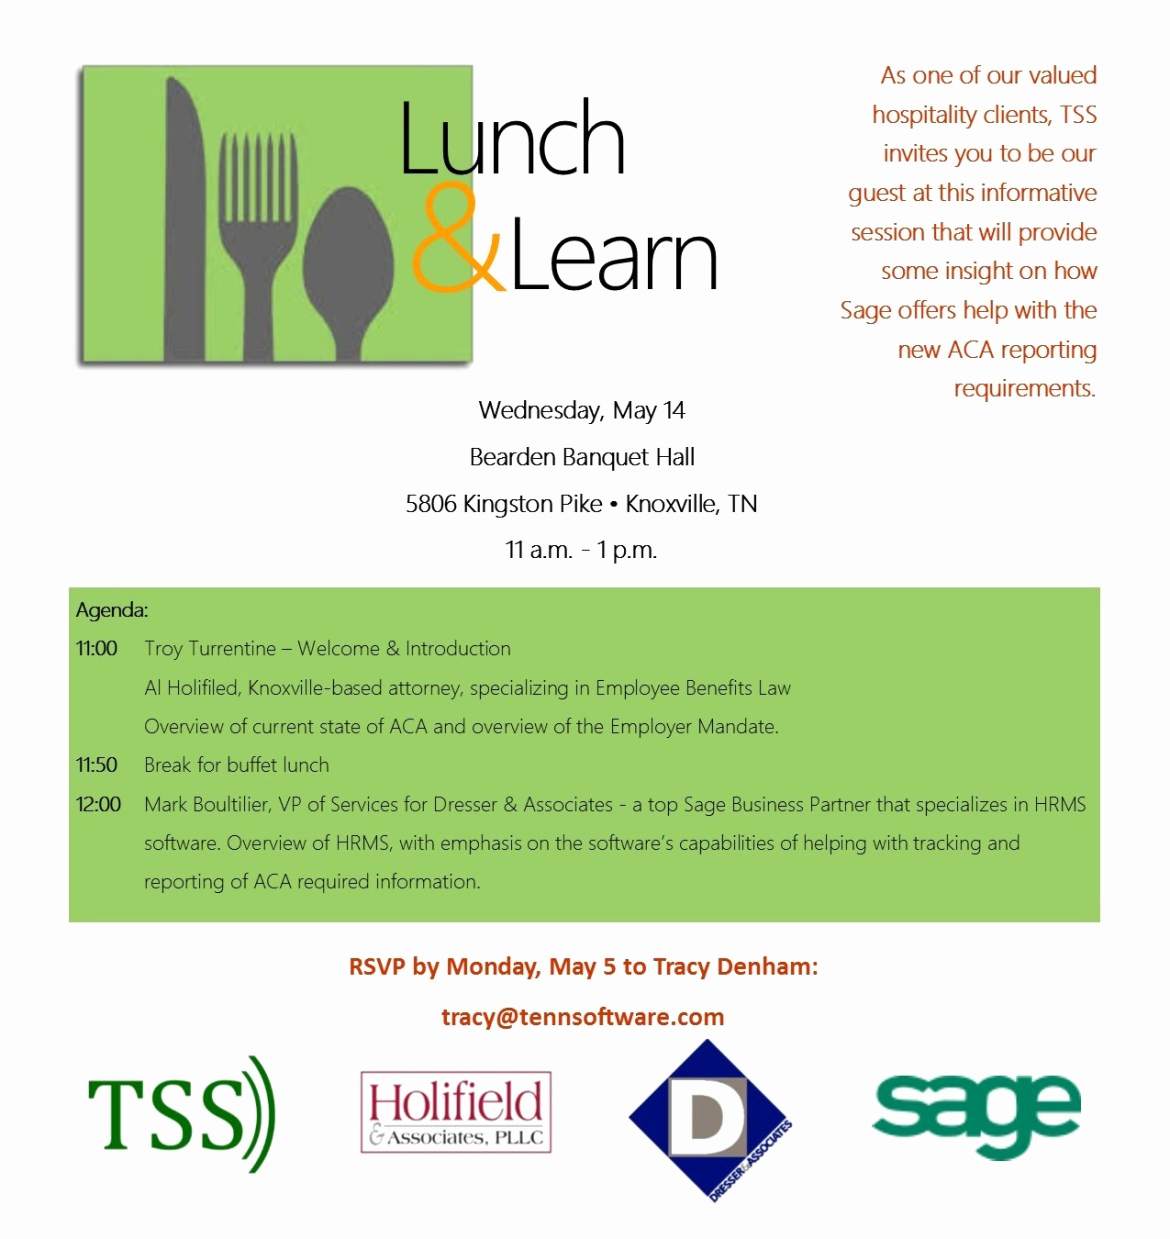 Lunch and Learn Invitation Awesome Hospitality Industry Lunch & Learn Aca Reporting – Tss